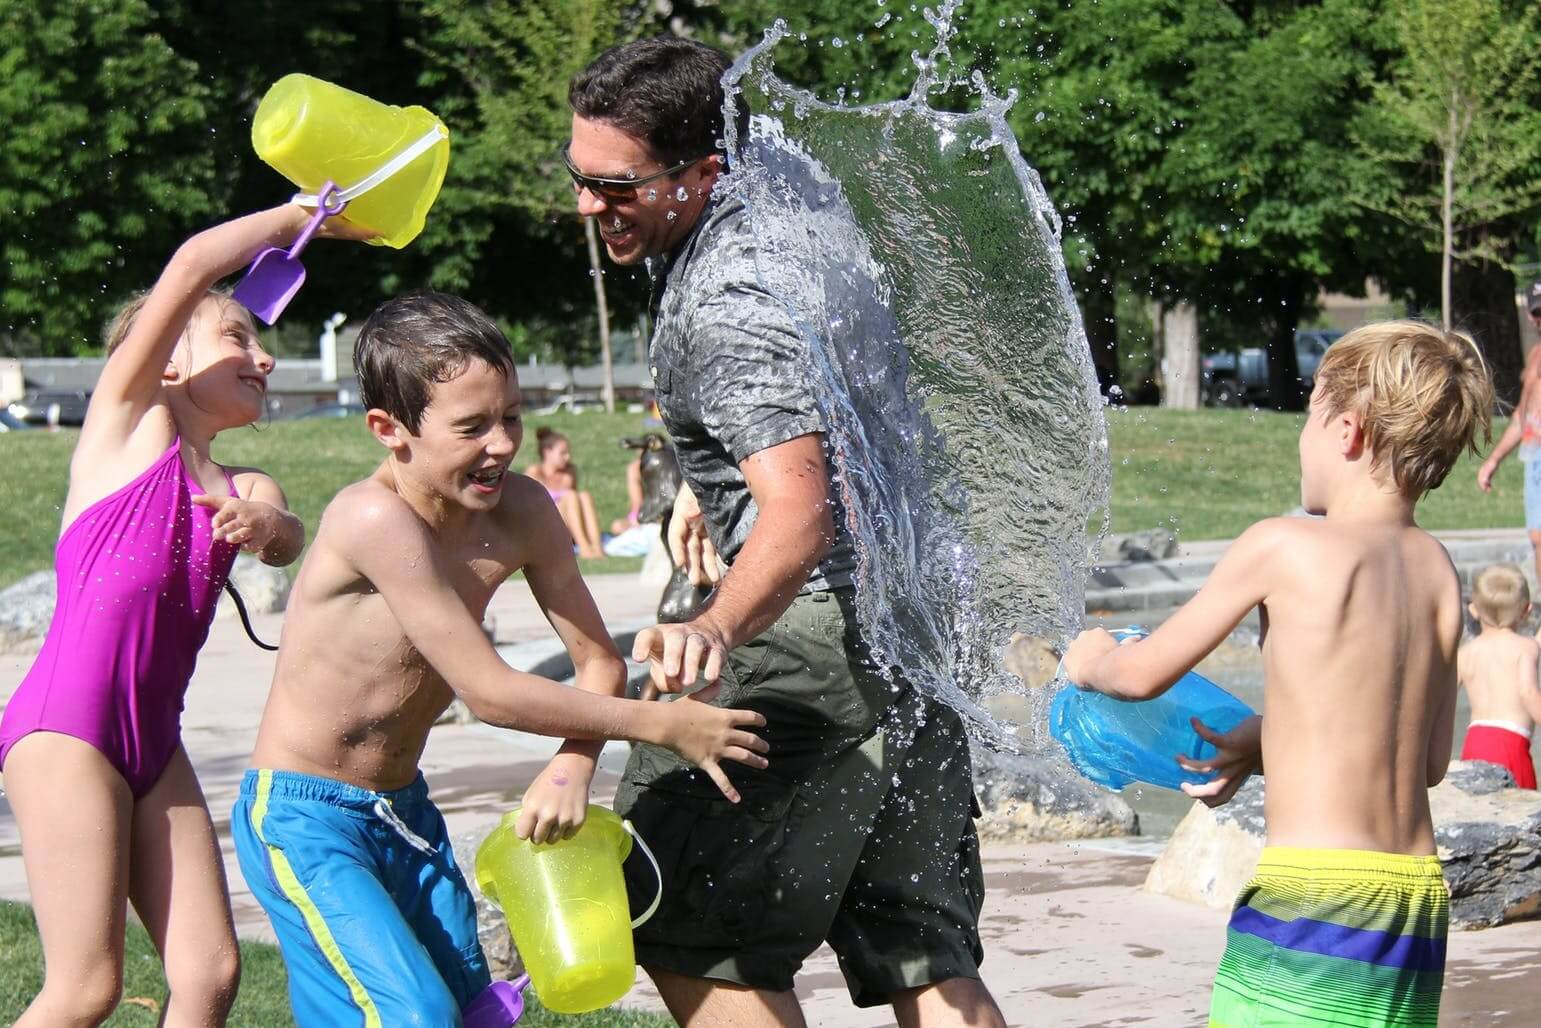 Summer Bucket List: 10 Family Fun Activities